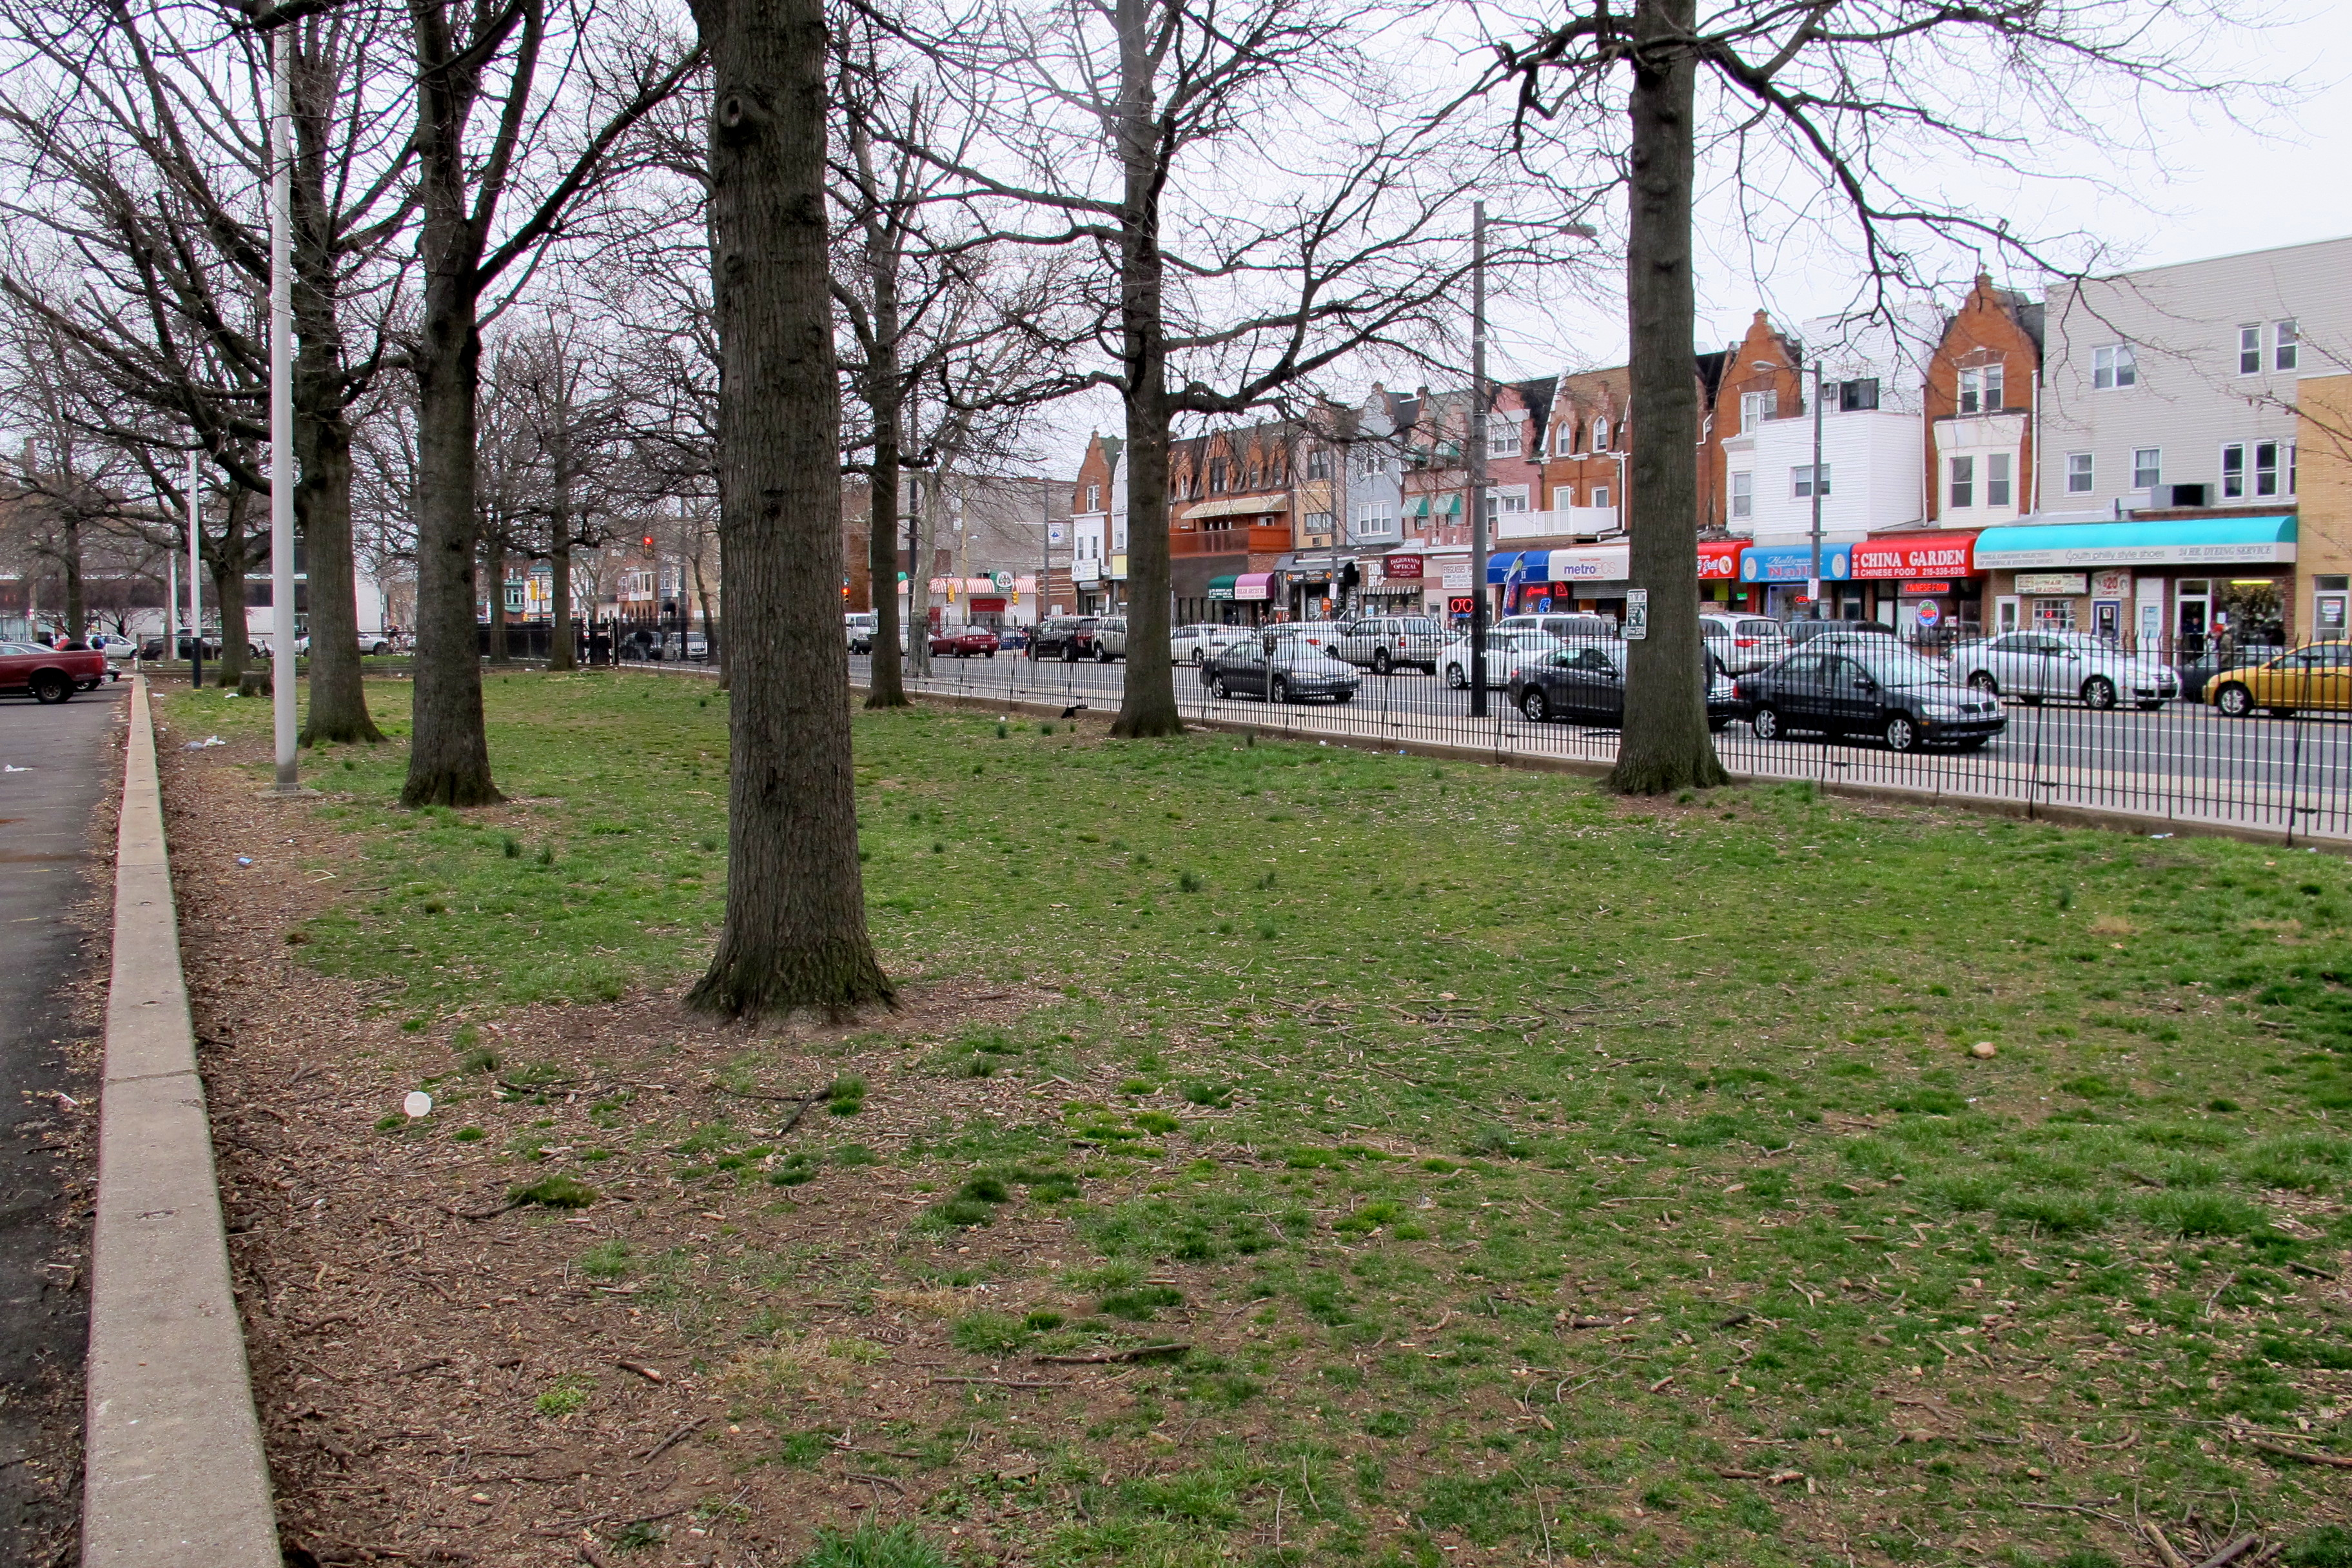 A park-like space could take root along South Broad Street for the community's enjoyment.